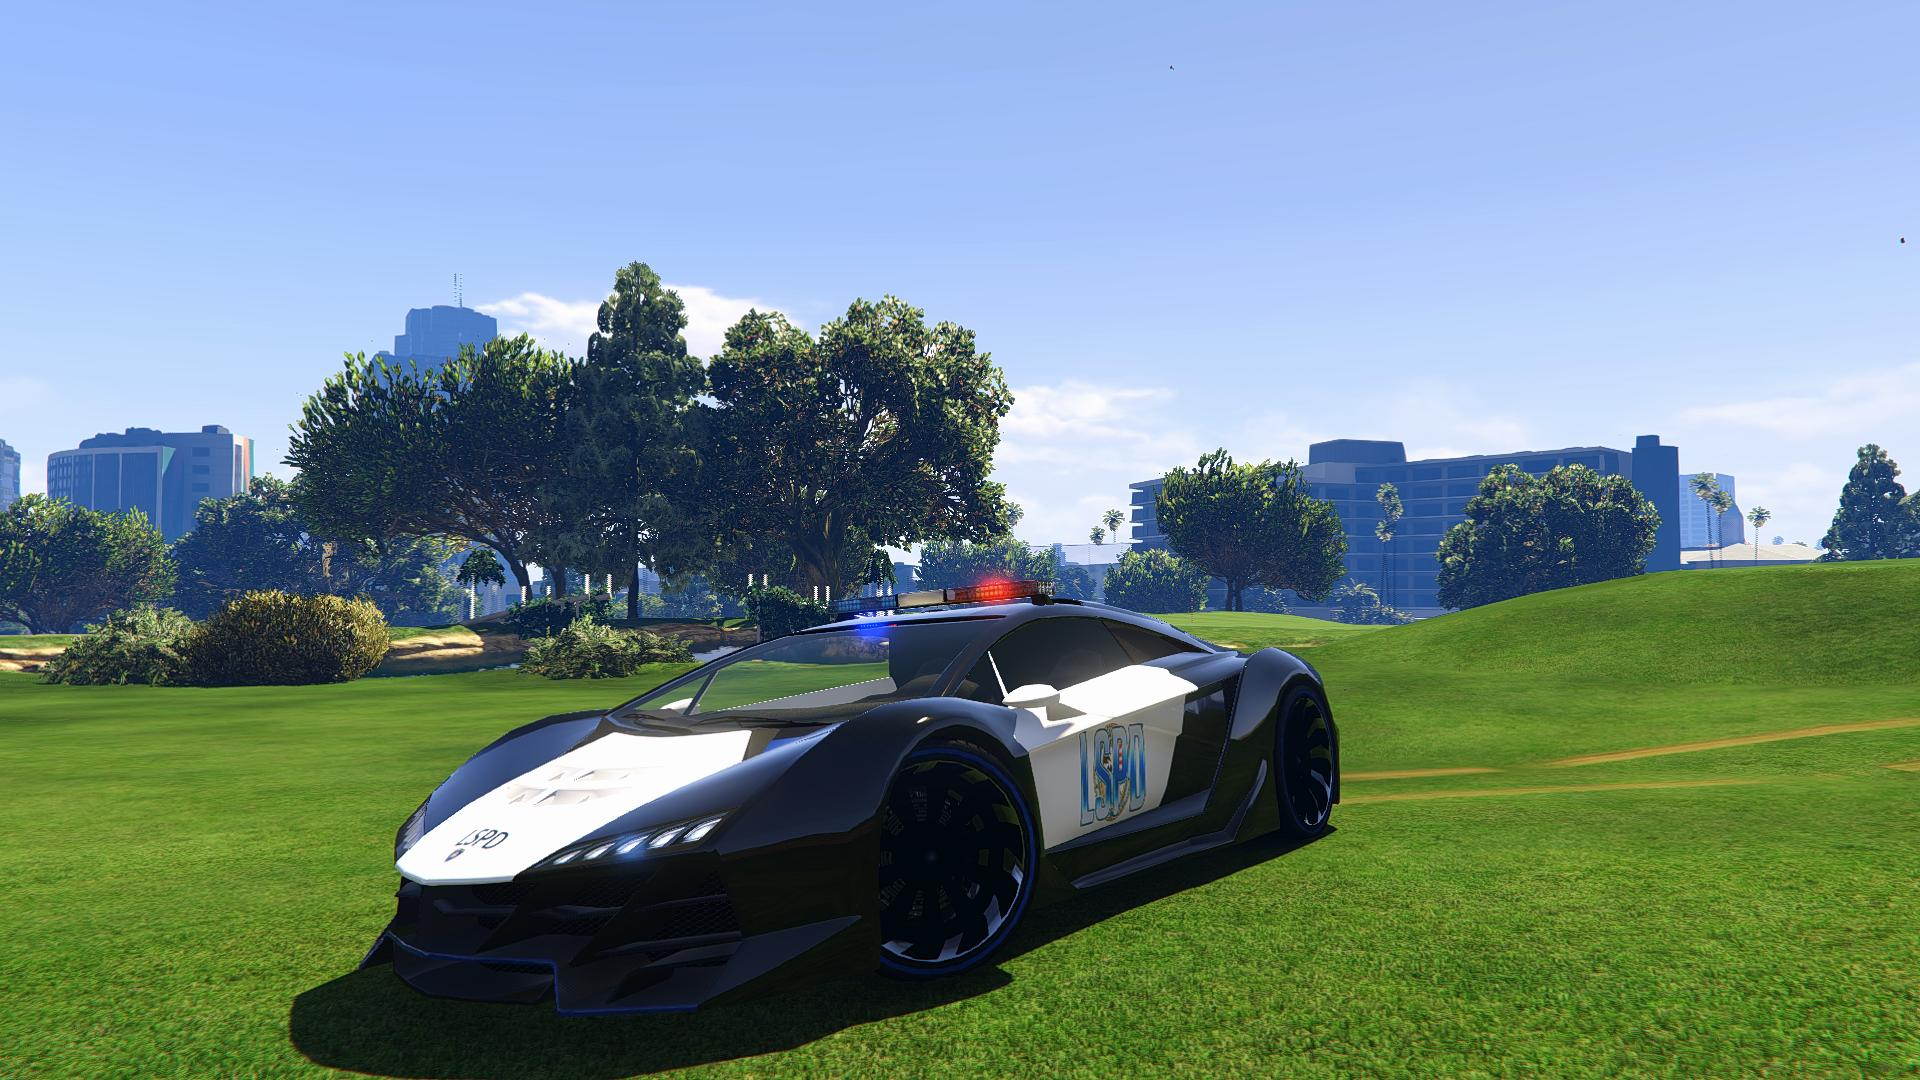 lamborghini police zentorno lspd vehicules pour gta v sur gta modding. Black Bedroom Furniture Sets. Home Design Ideas